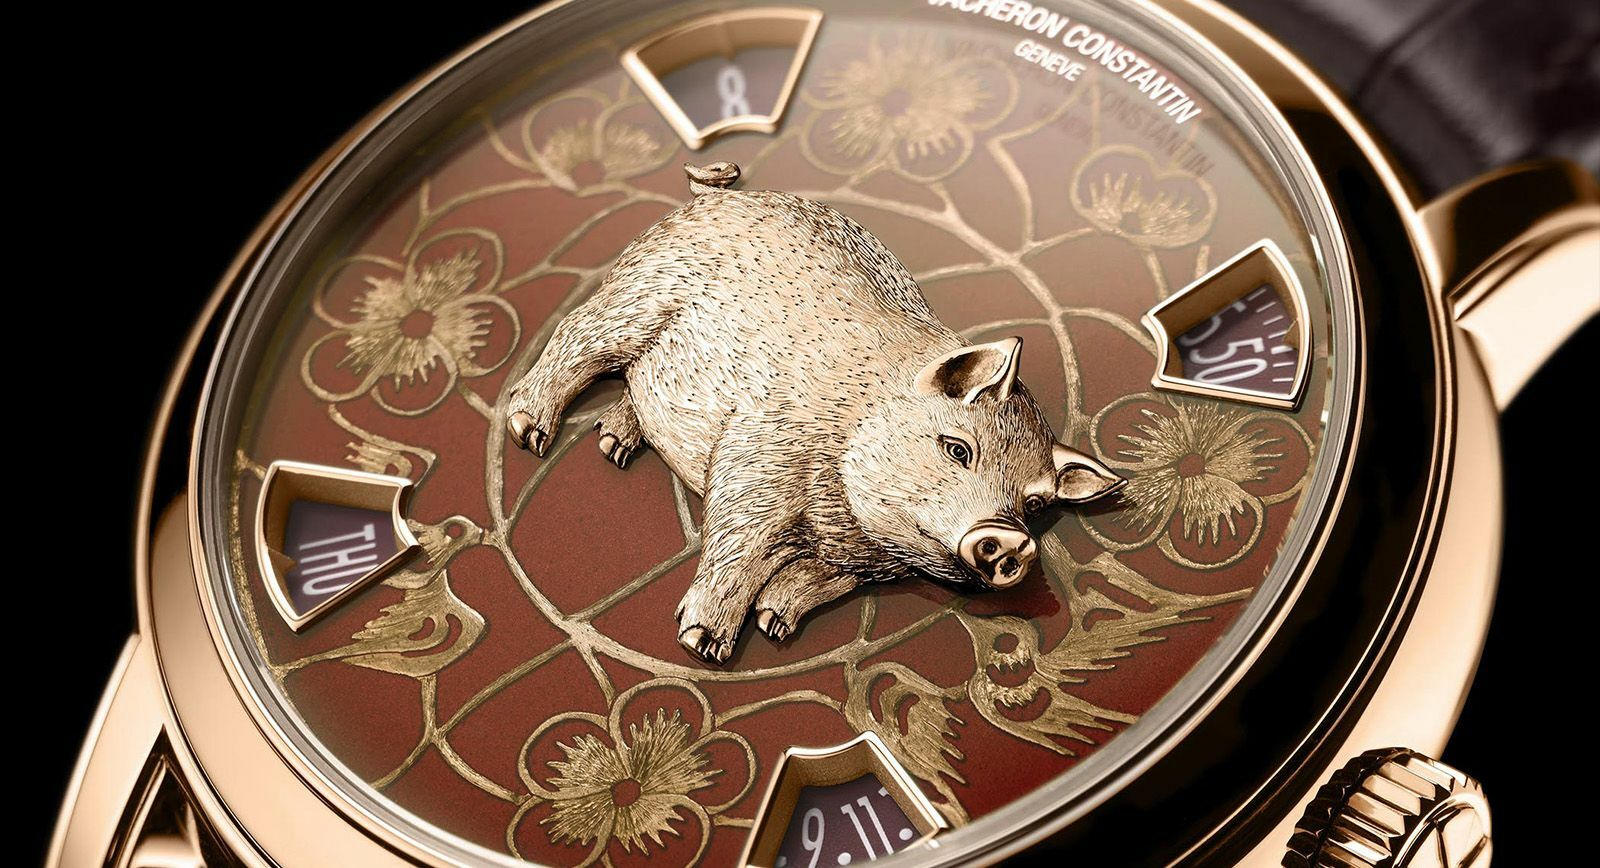 Pig watch by Vacheron Constantin for the Chinese year 2019